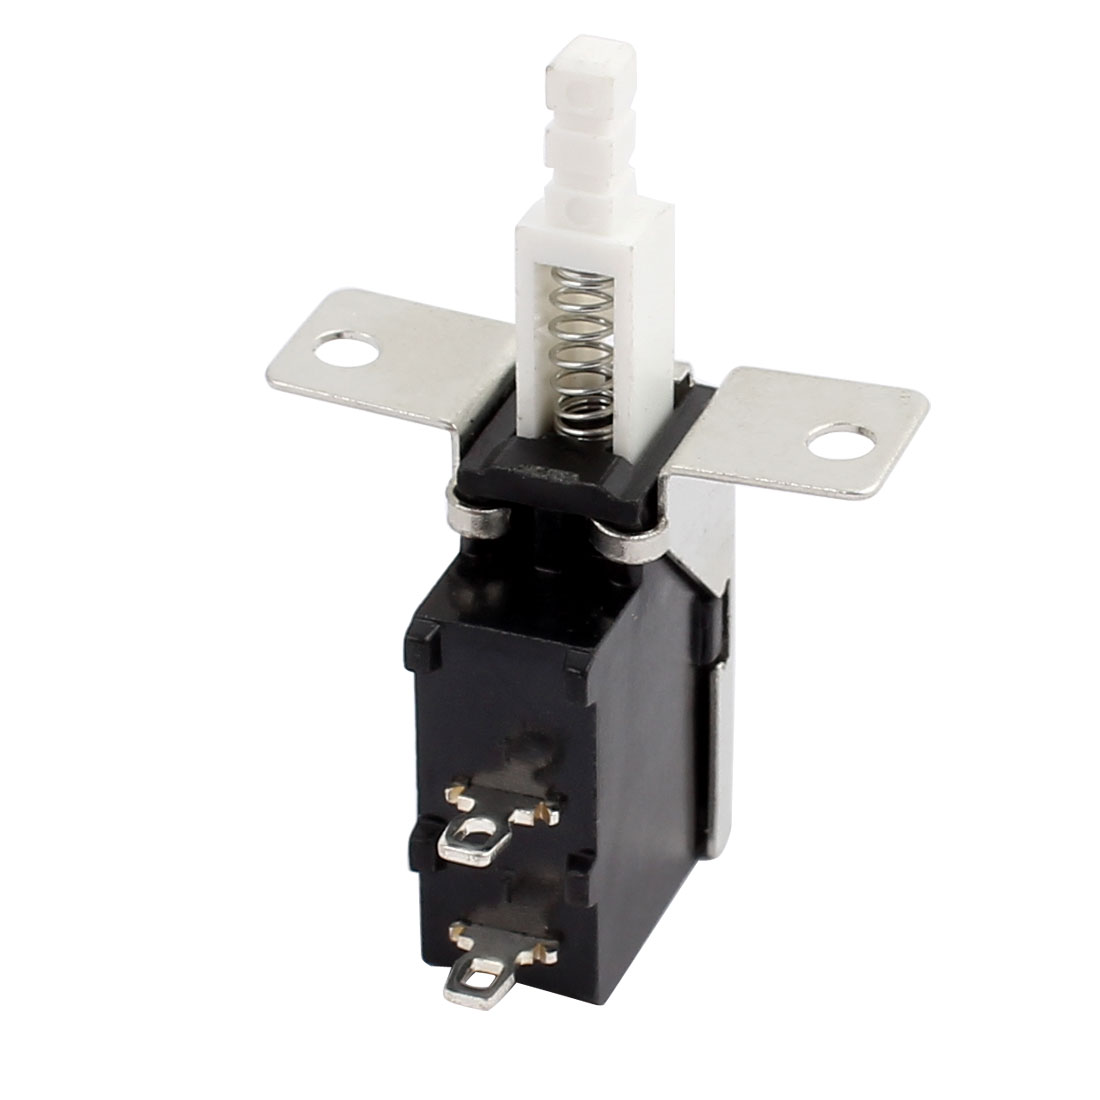 Self-locking Type Push Button Switch for TV DVD Audio Disinfection Cabinet